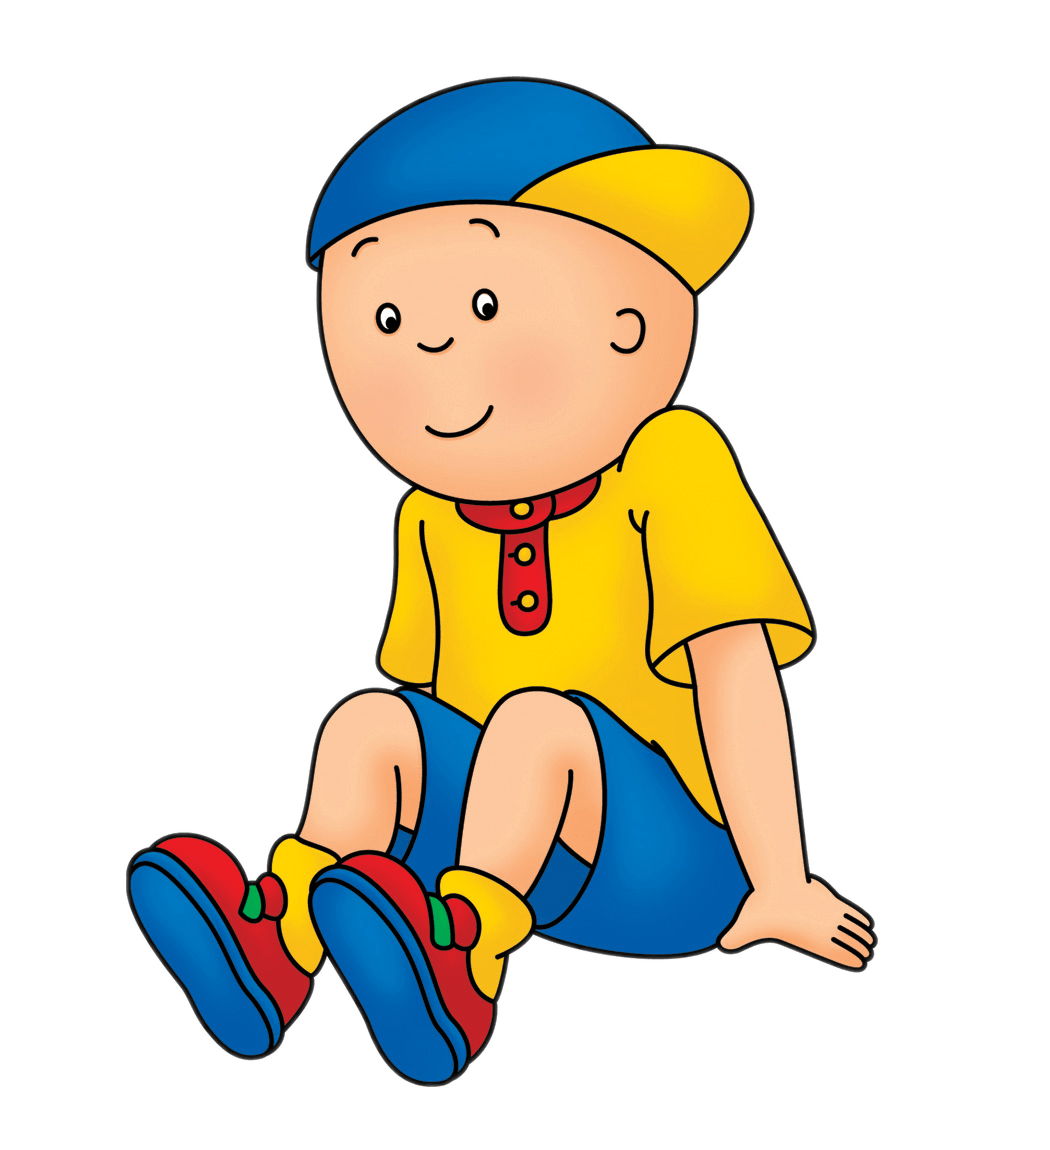 caillou sitting transparent png stickpng rh stickpng com Caillou Rosie image clipart caillou